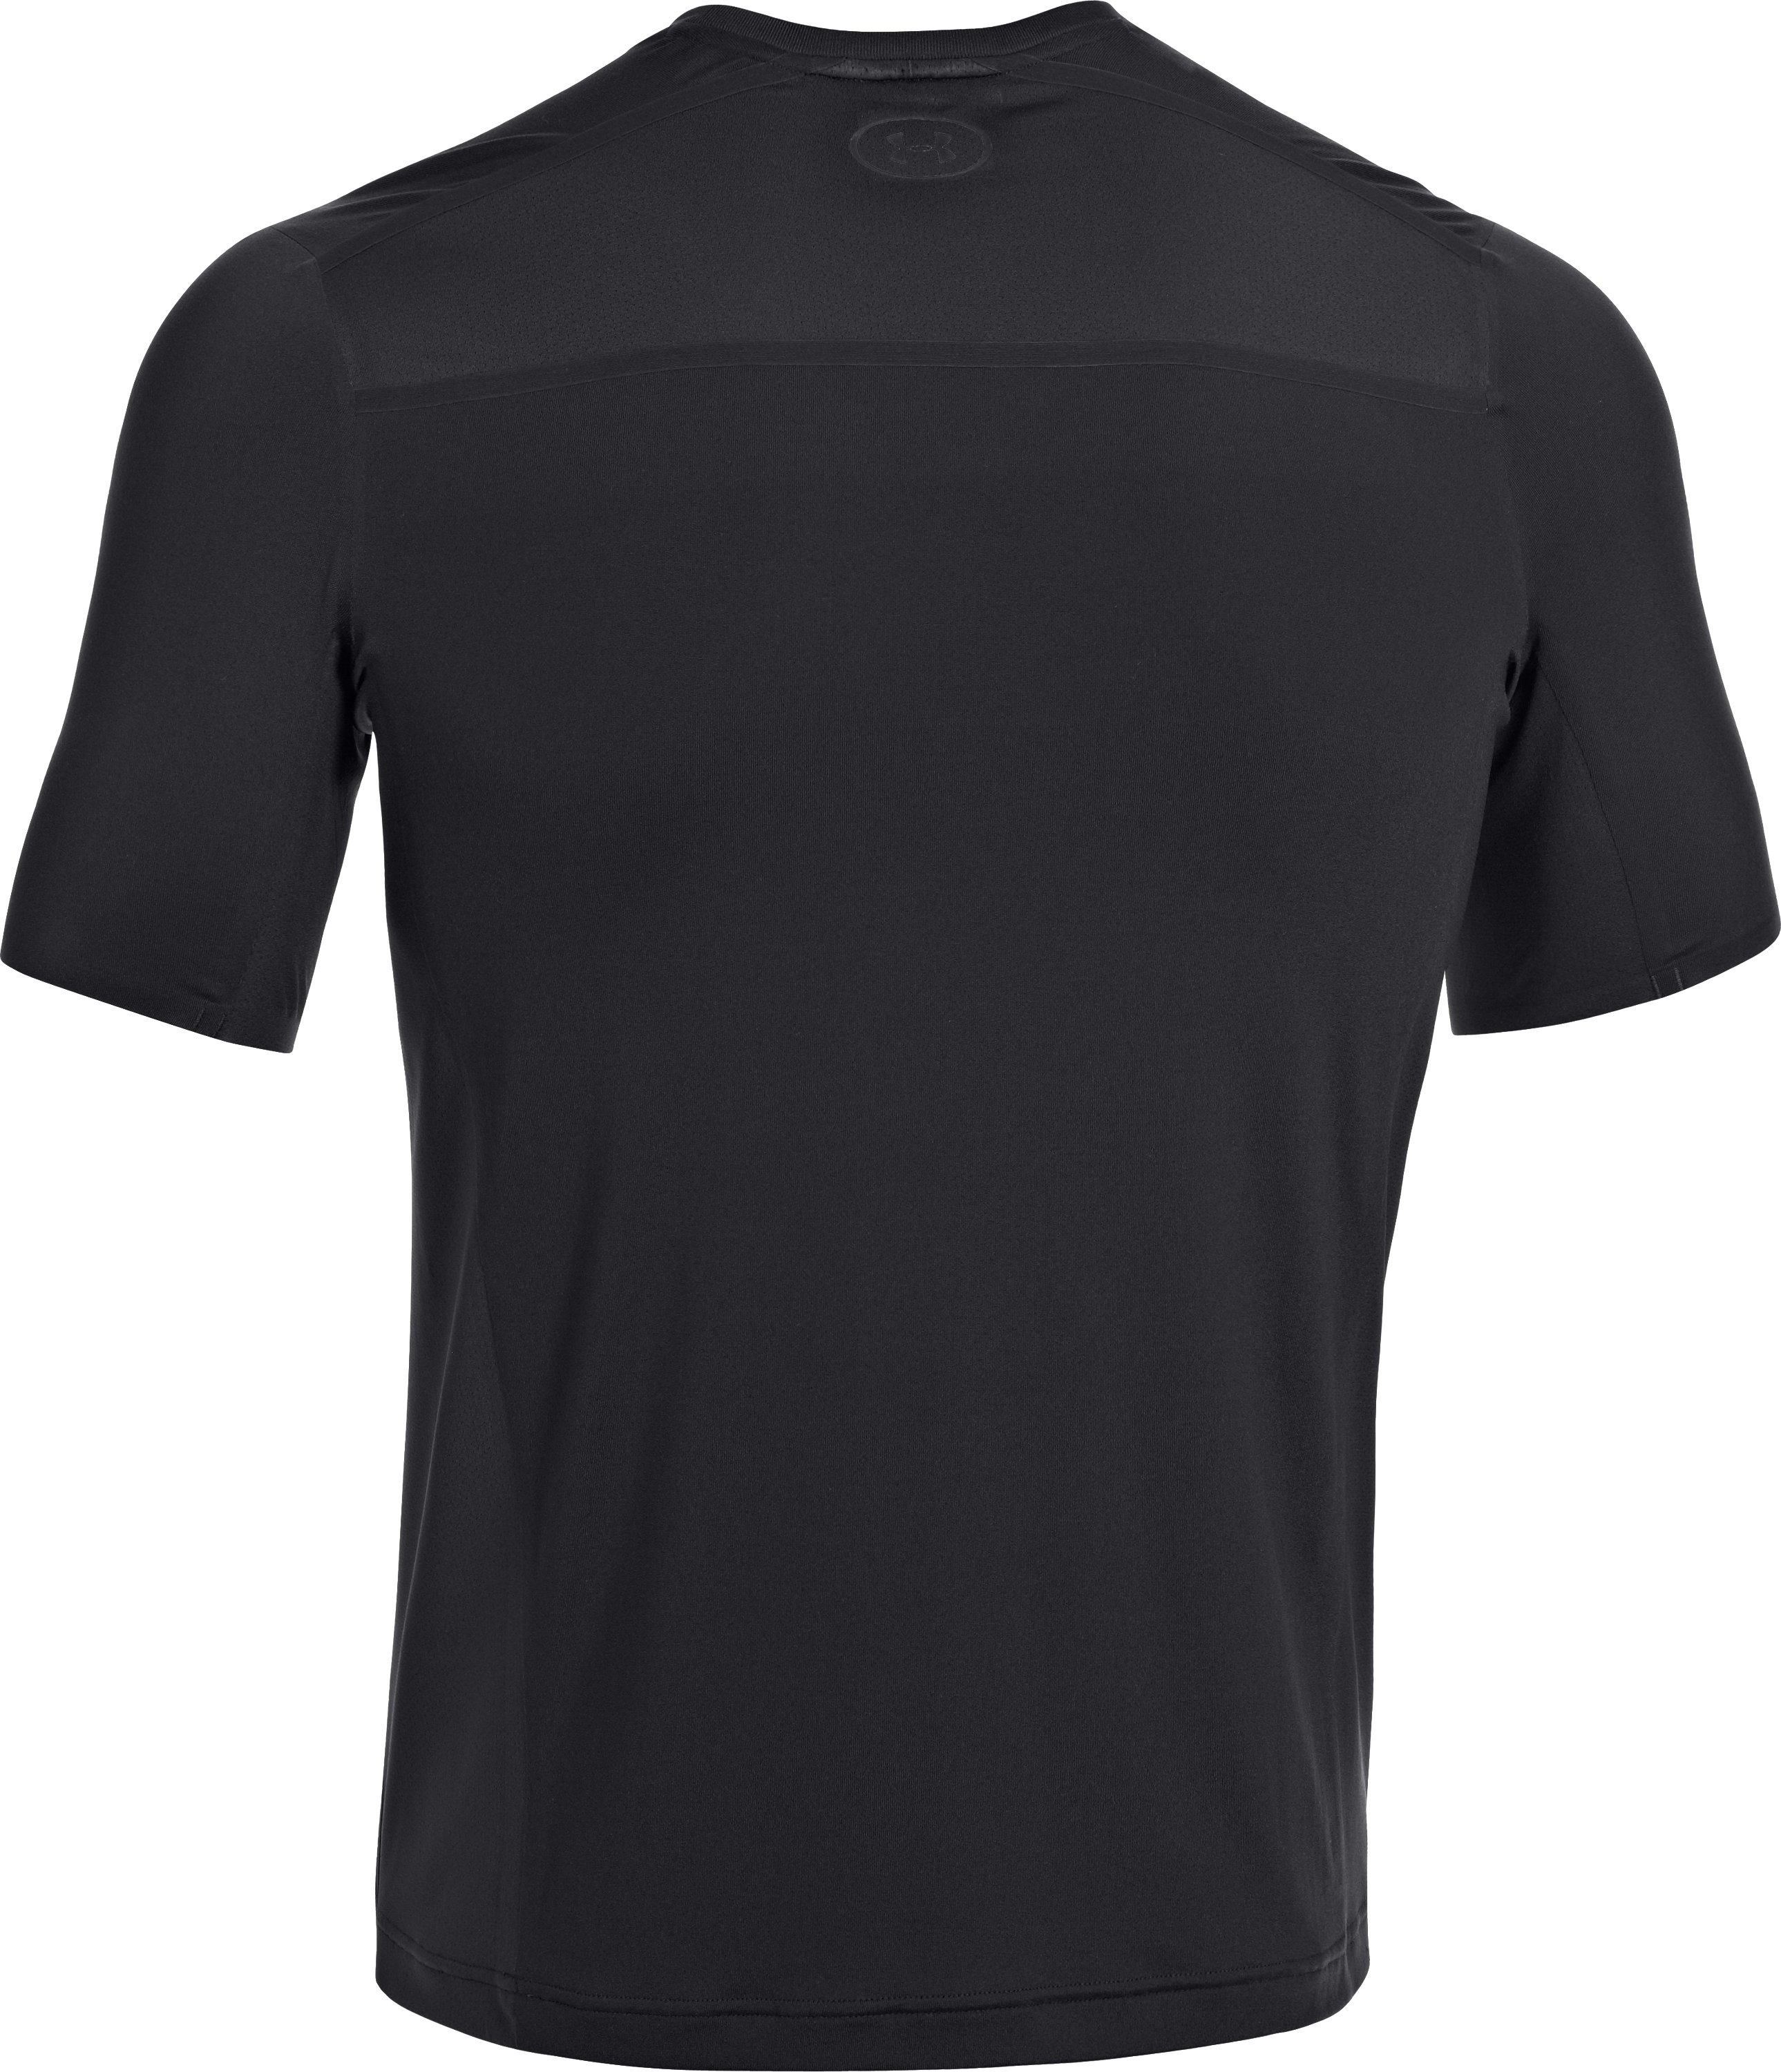 Men's UA Station Crew T-Shirt, Black